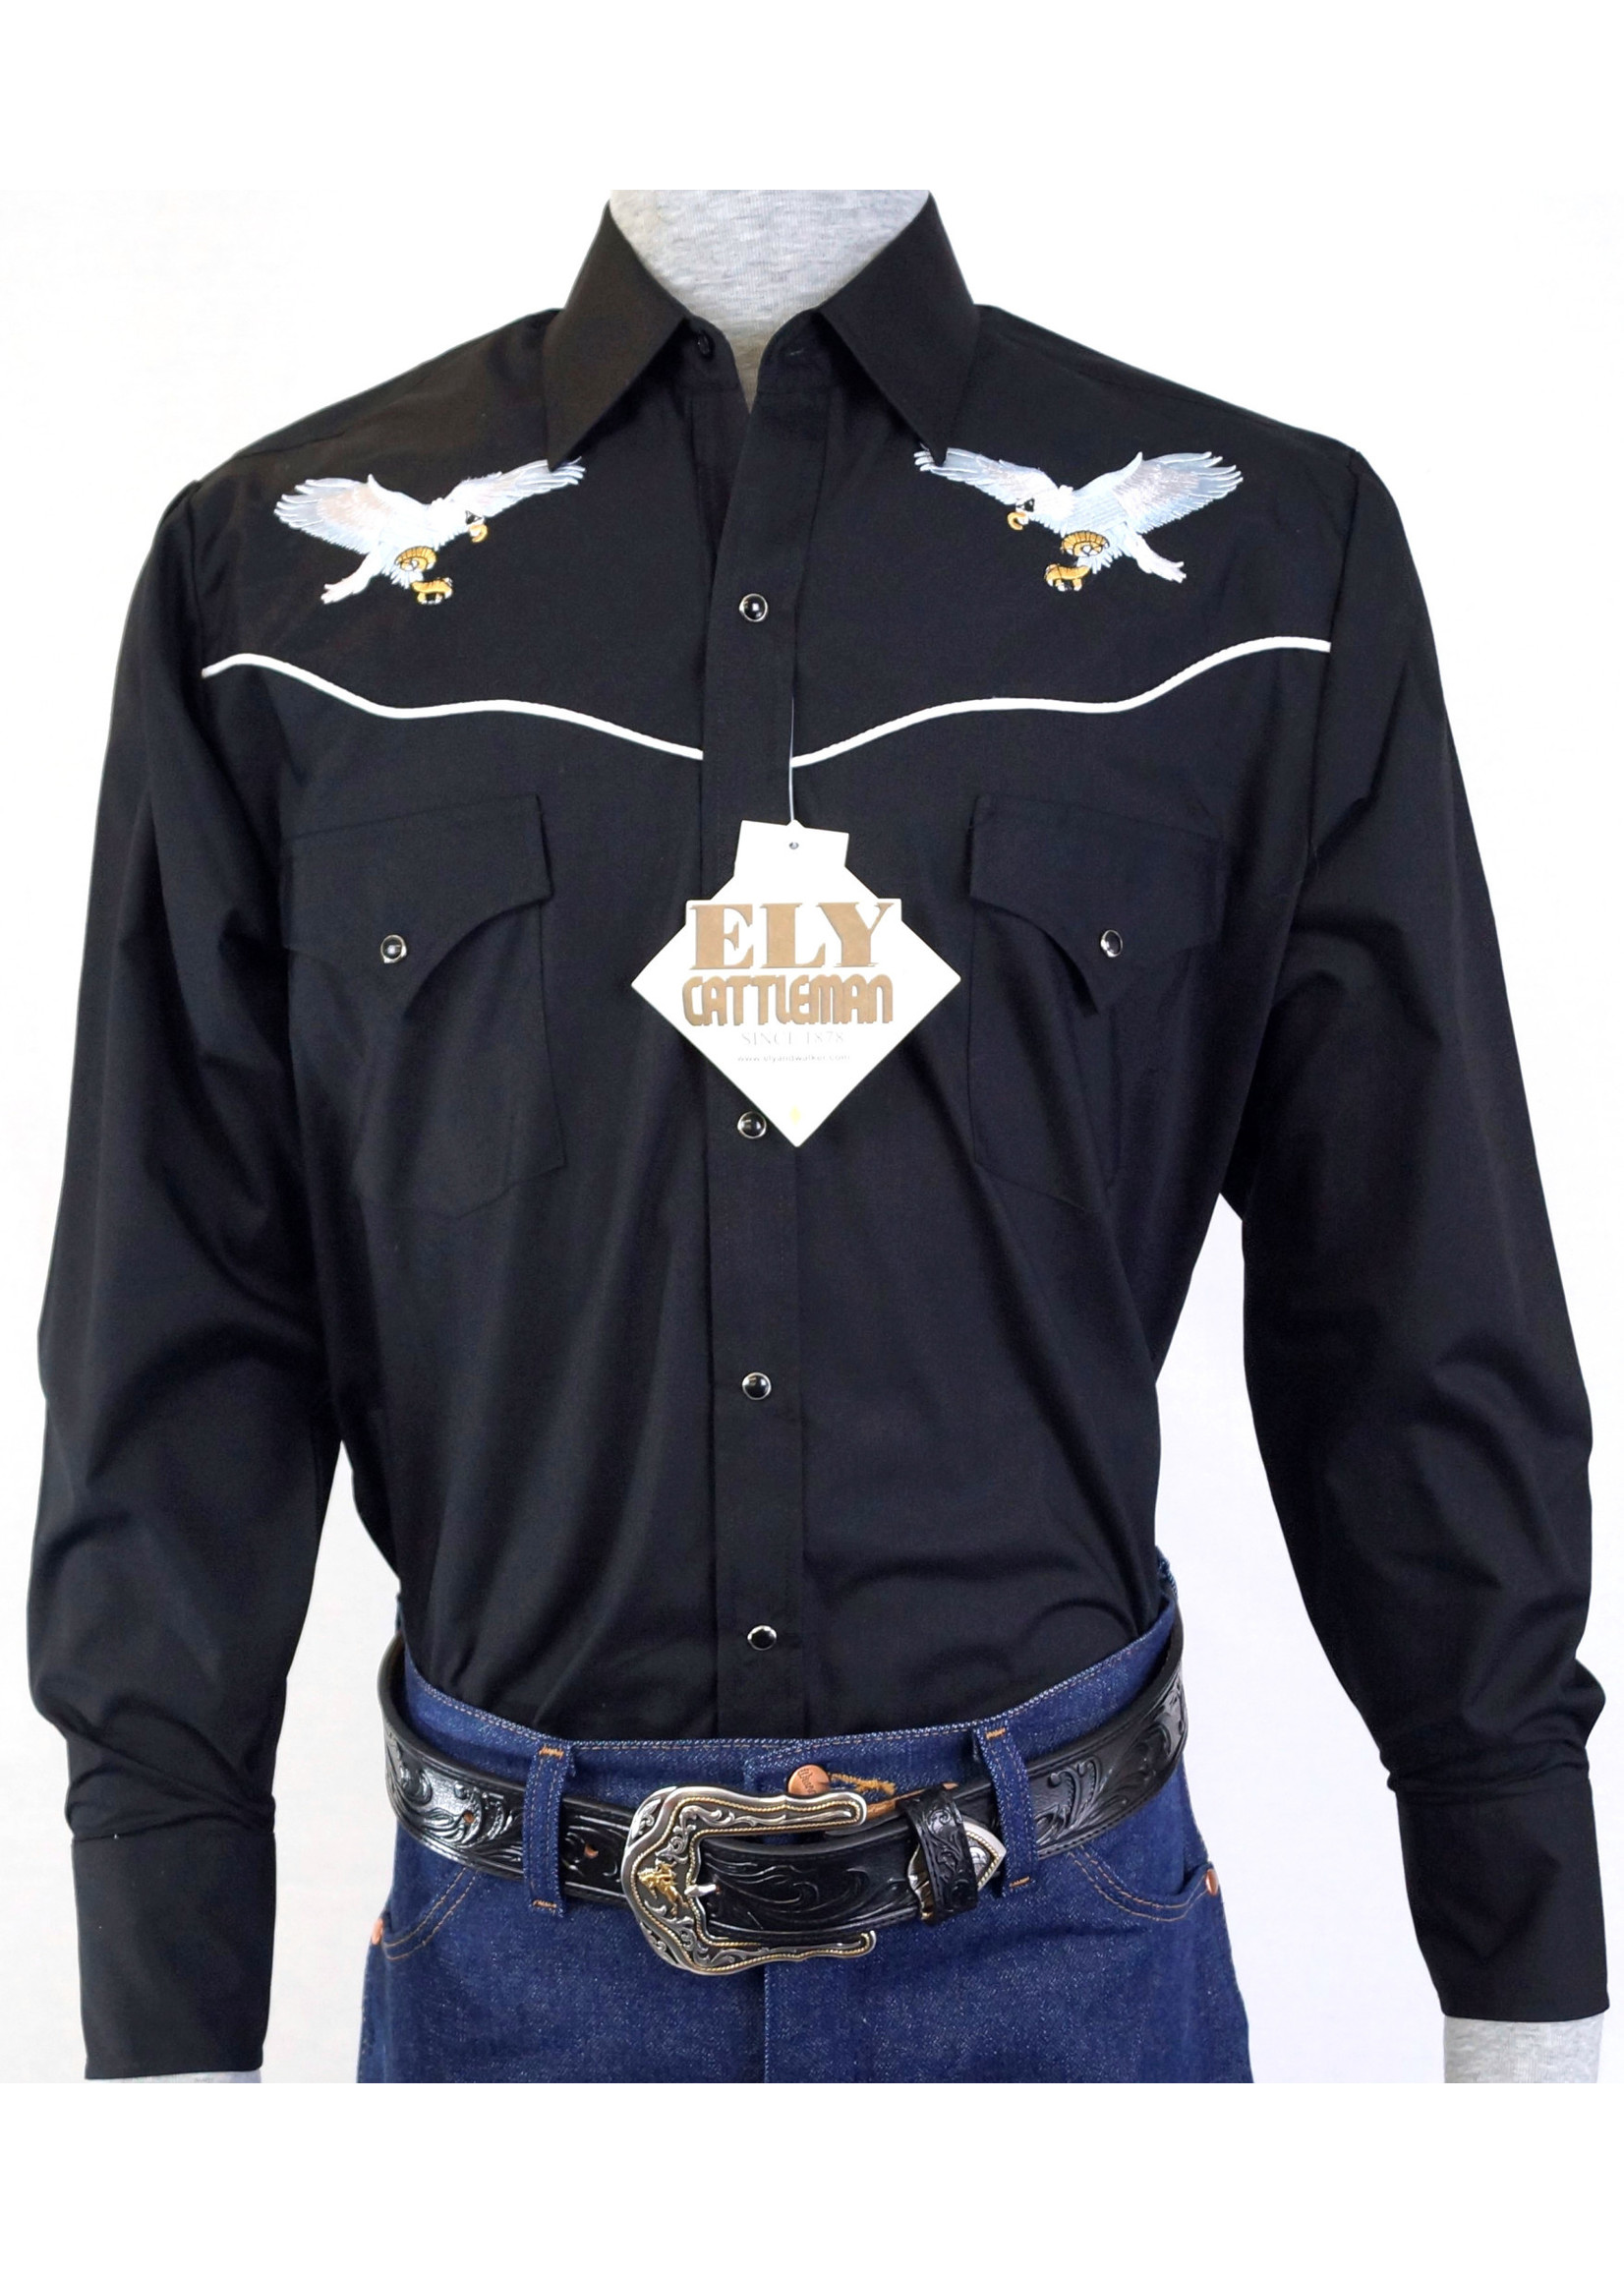 Ely Long Sleeve Black Western Shirt with Eagle Embroidery